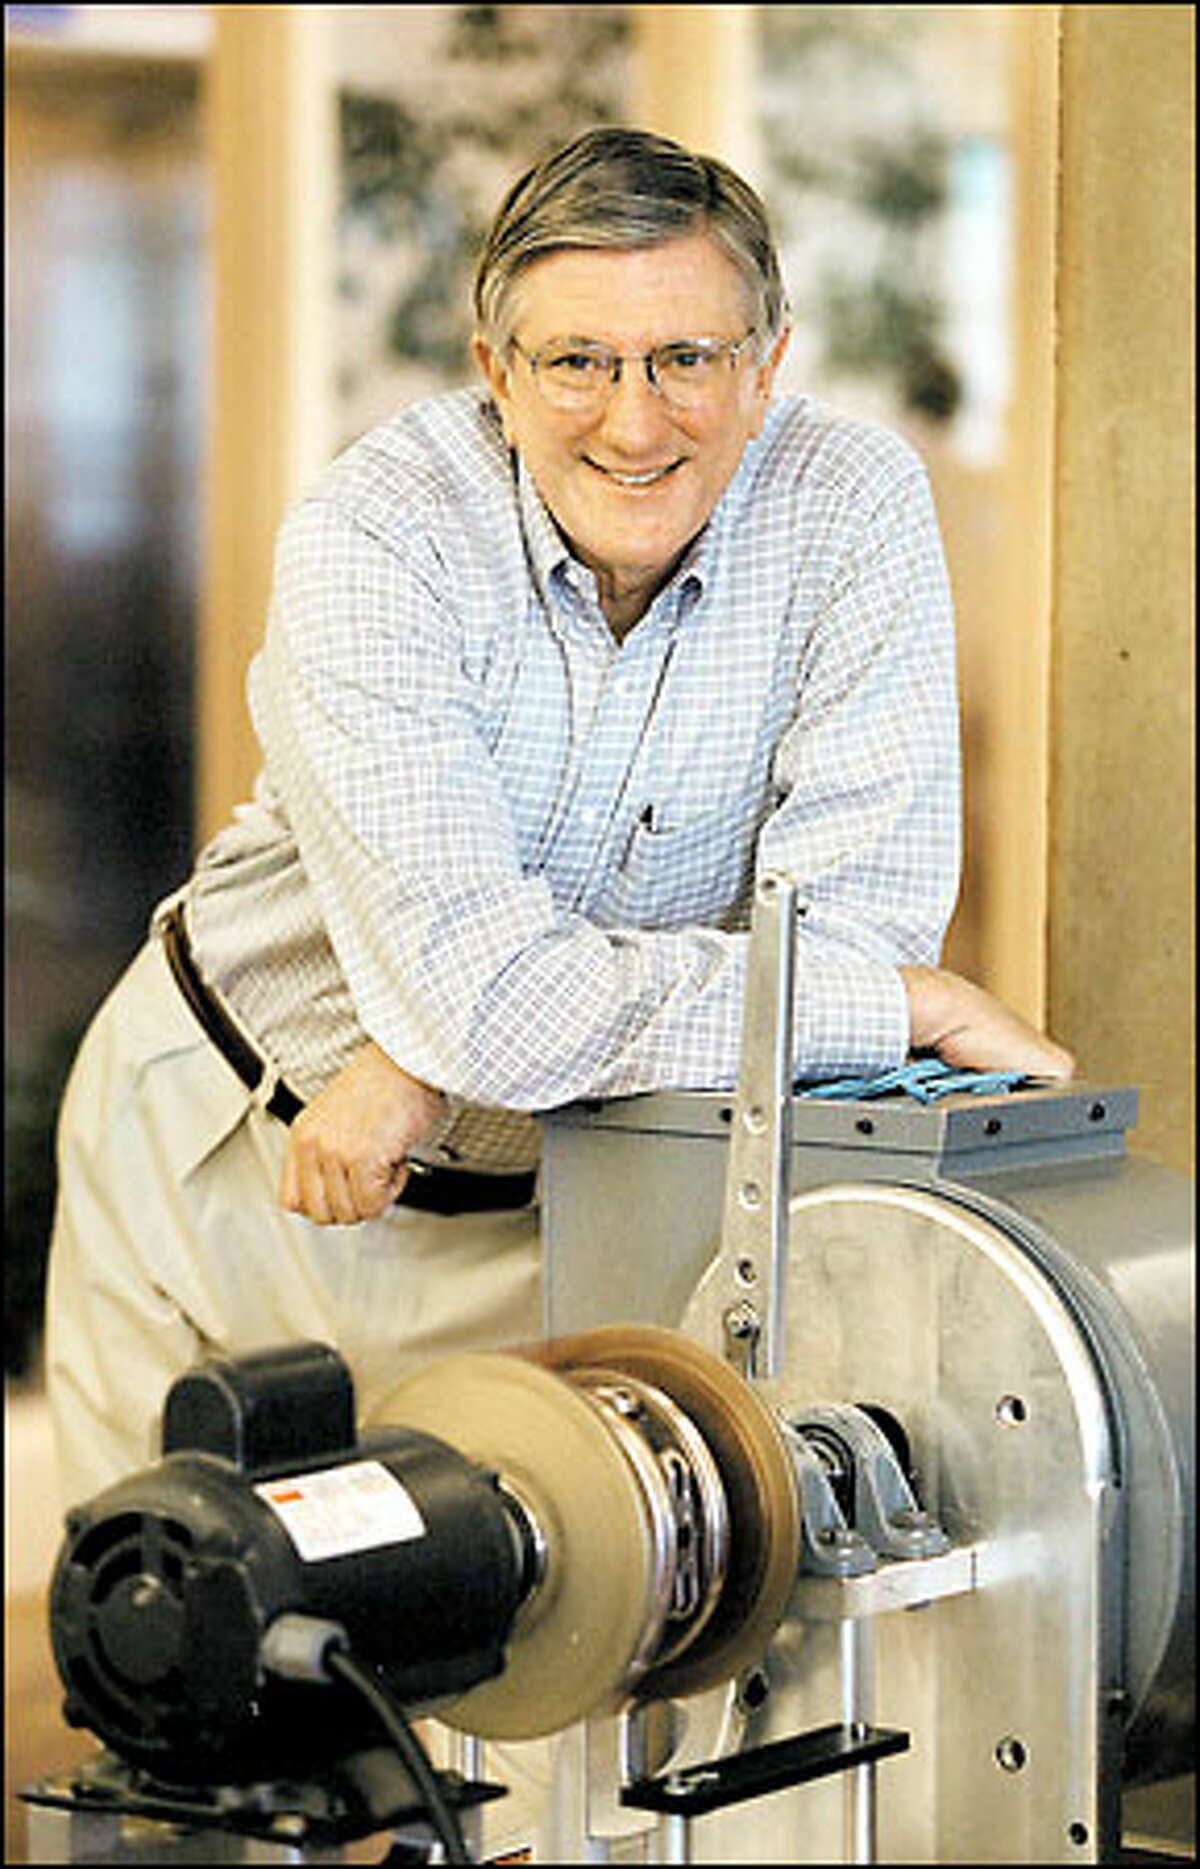 Ron Woodard, former head of Boeing Commercial Airplanes, is now president and CEO of MagnaDrive of Seattle. Here he is shown with a MagnaDrive Adjustable Speed Drive.